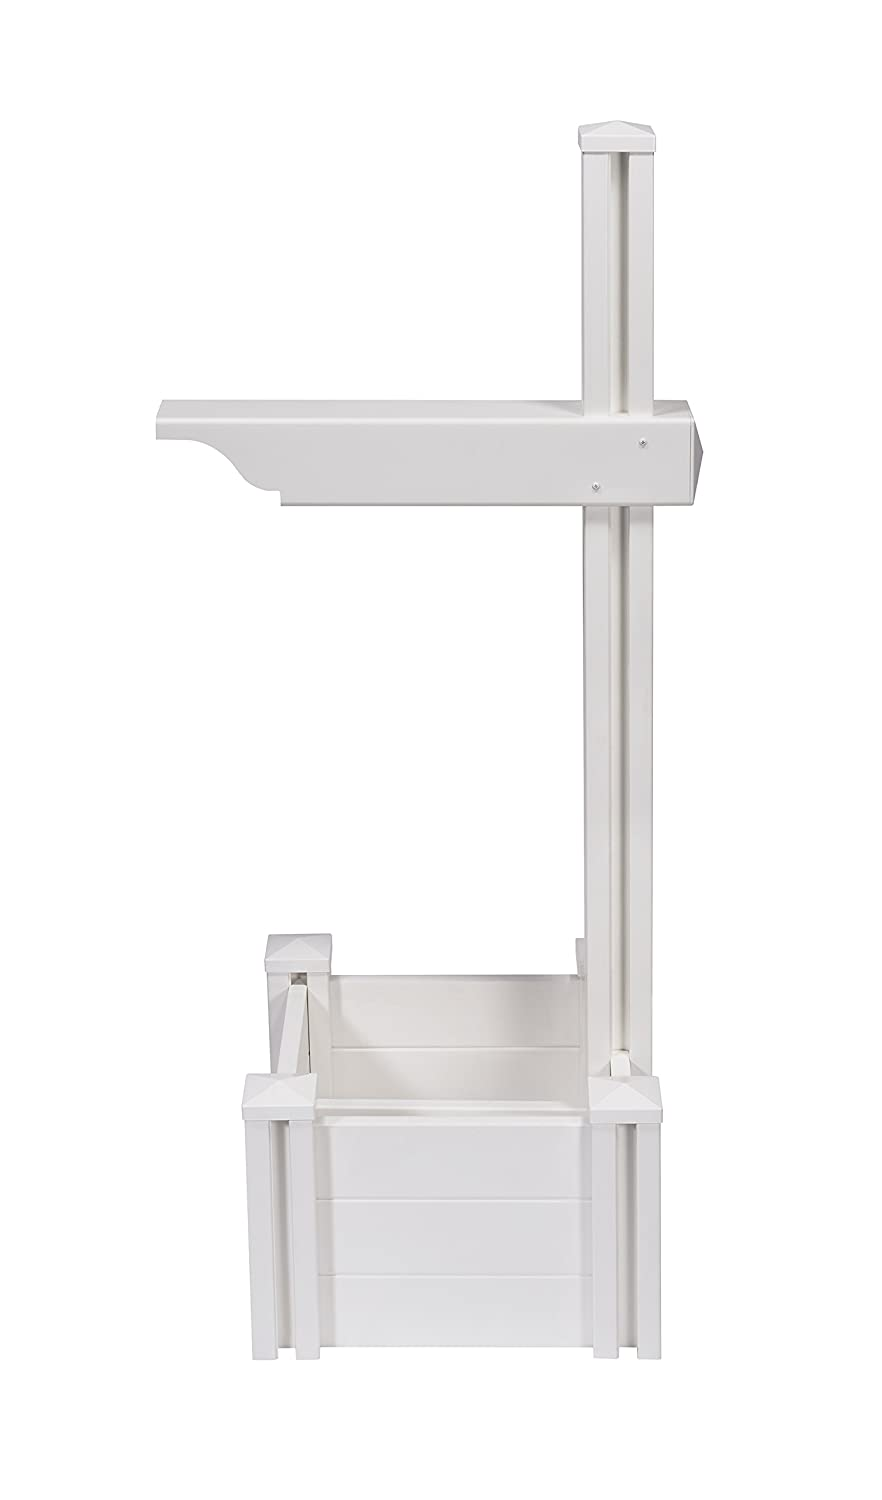 Zippity Outdoor Products ZP19027 Majestic Mailbox Post with No-Dig Steel Pipe Anchor Kit White